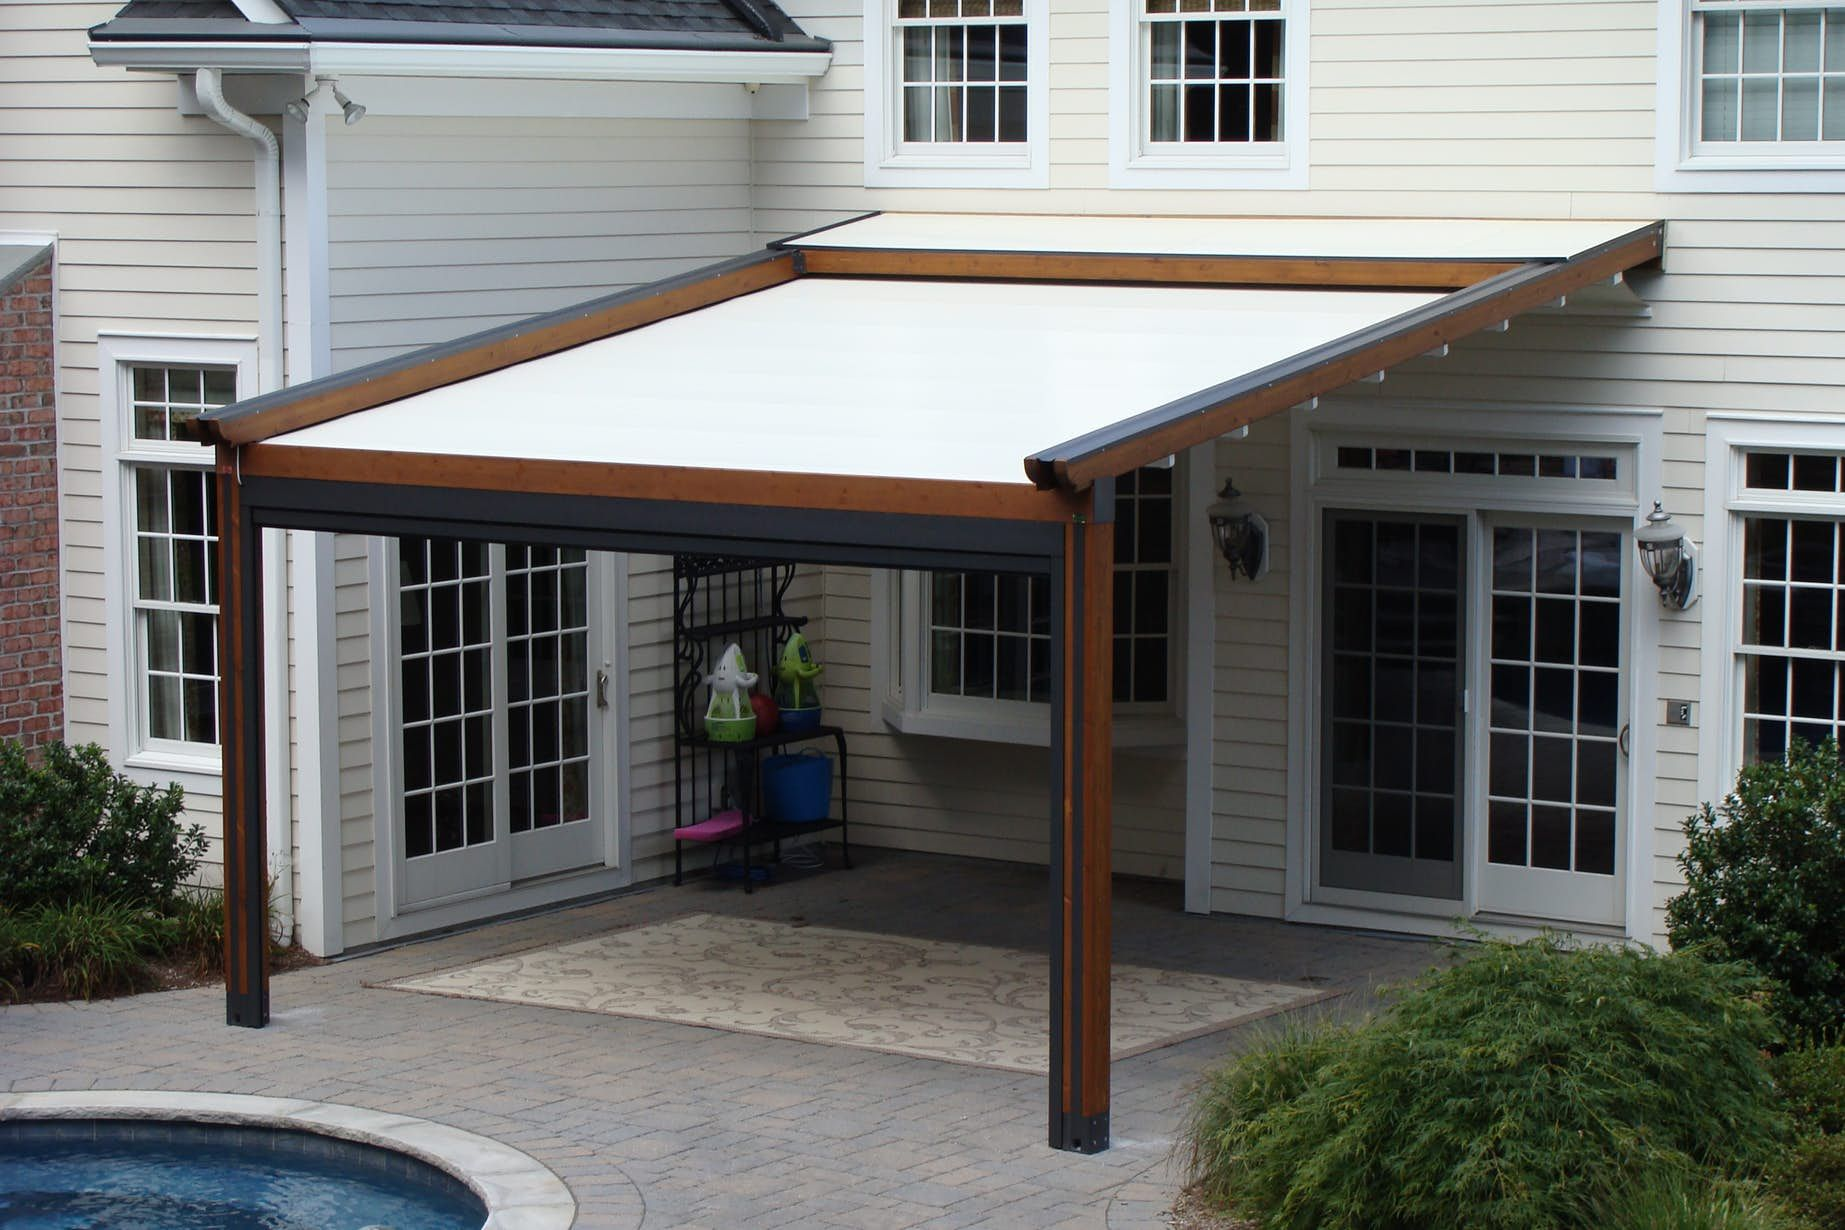 The Gennius Pergola Awning with cover projected and solar shade